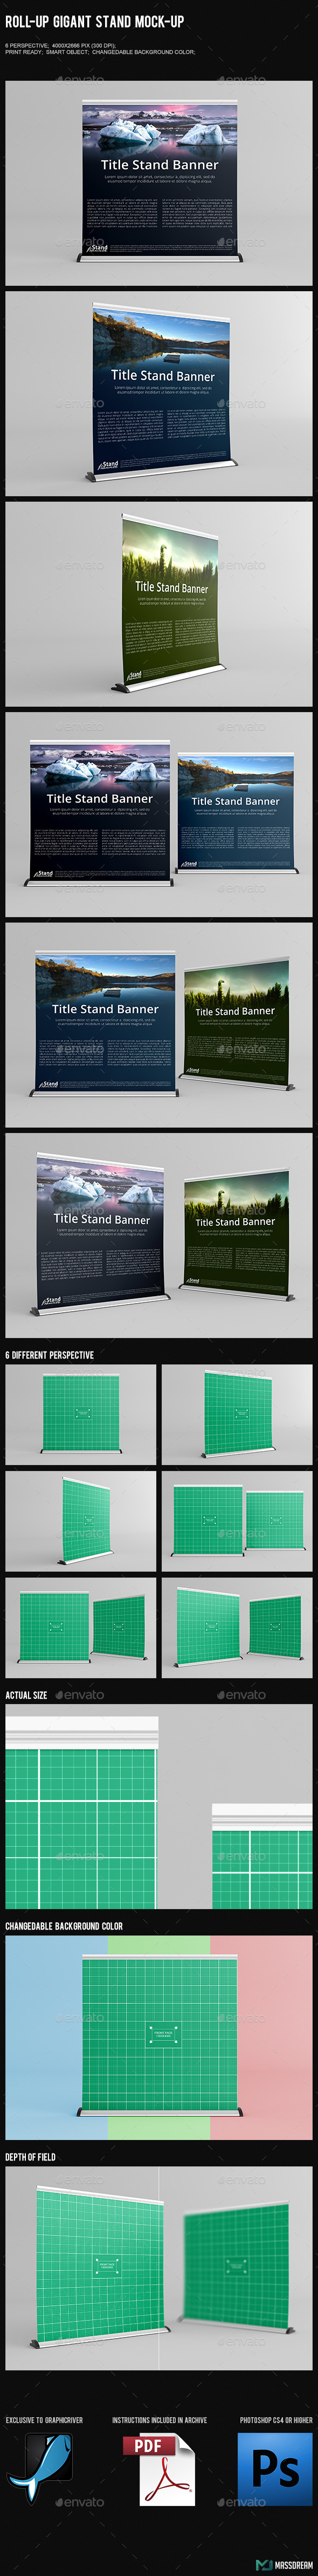 GraphicRiver Roll-Up Gigant Stand Mock-Up 10207991